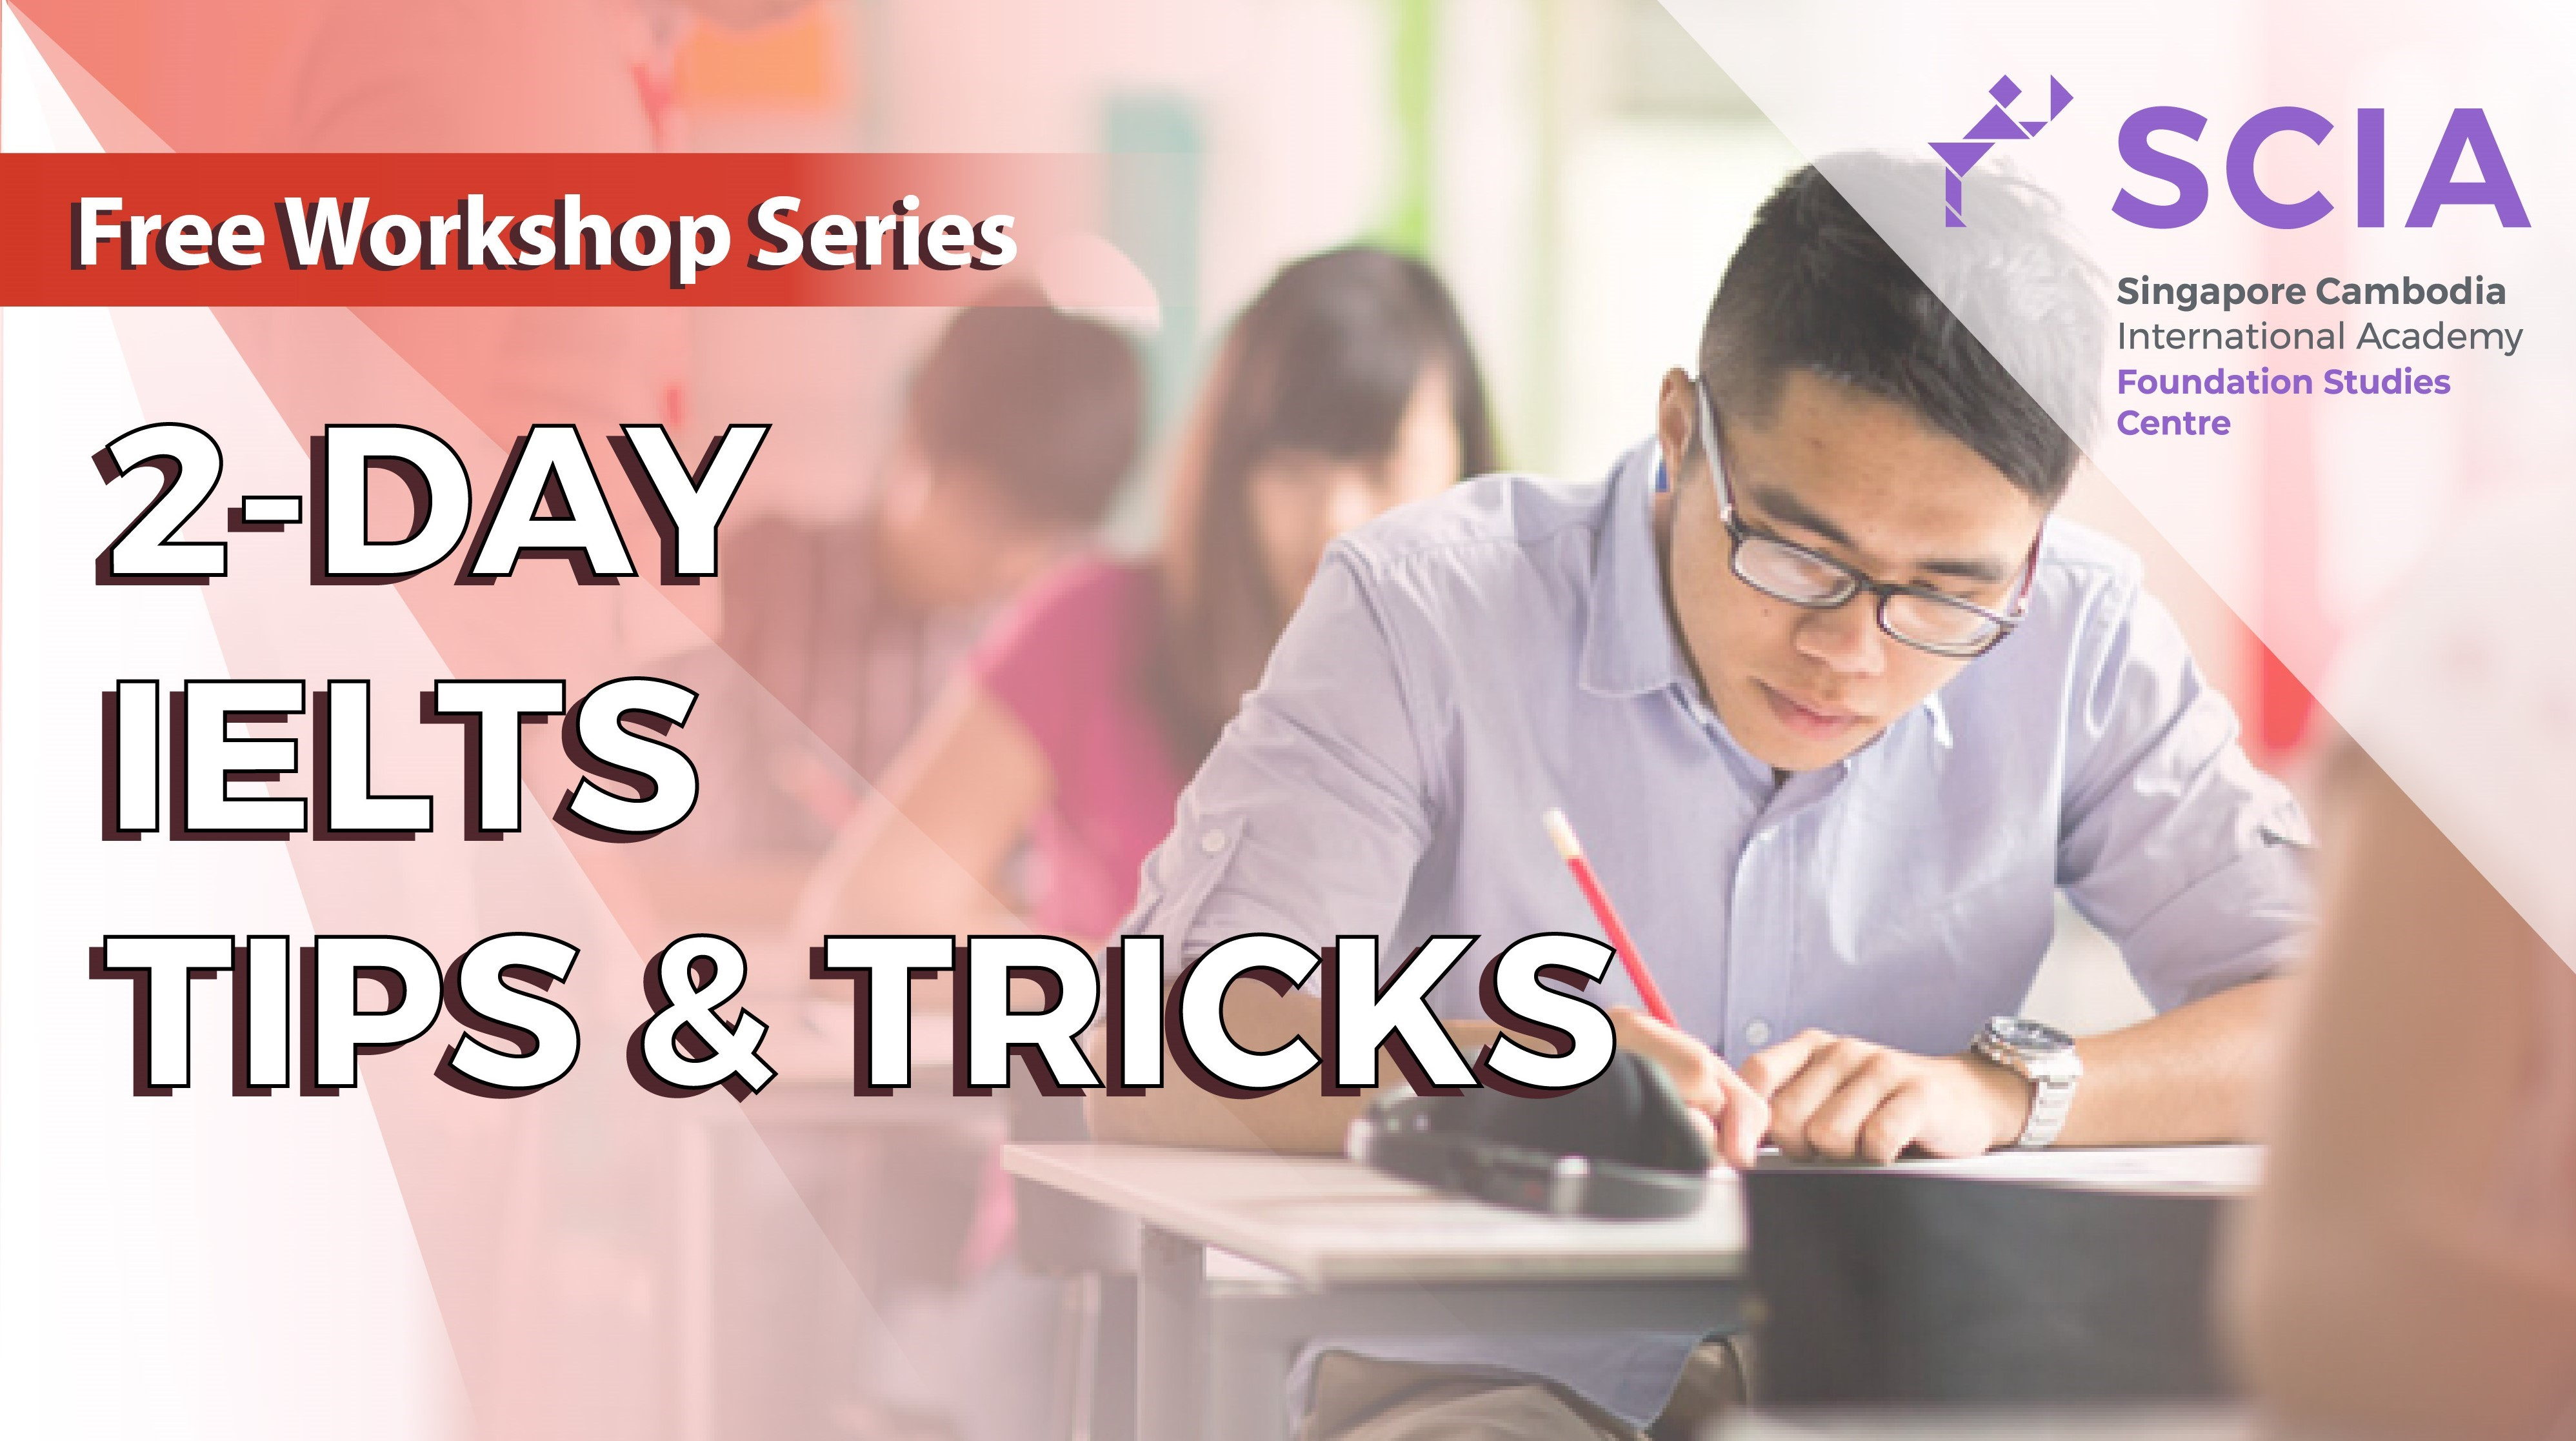 2-Day IELTS Tips & Tricks